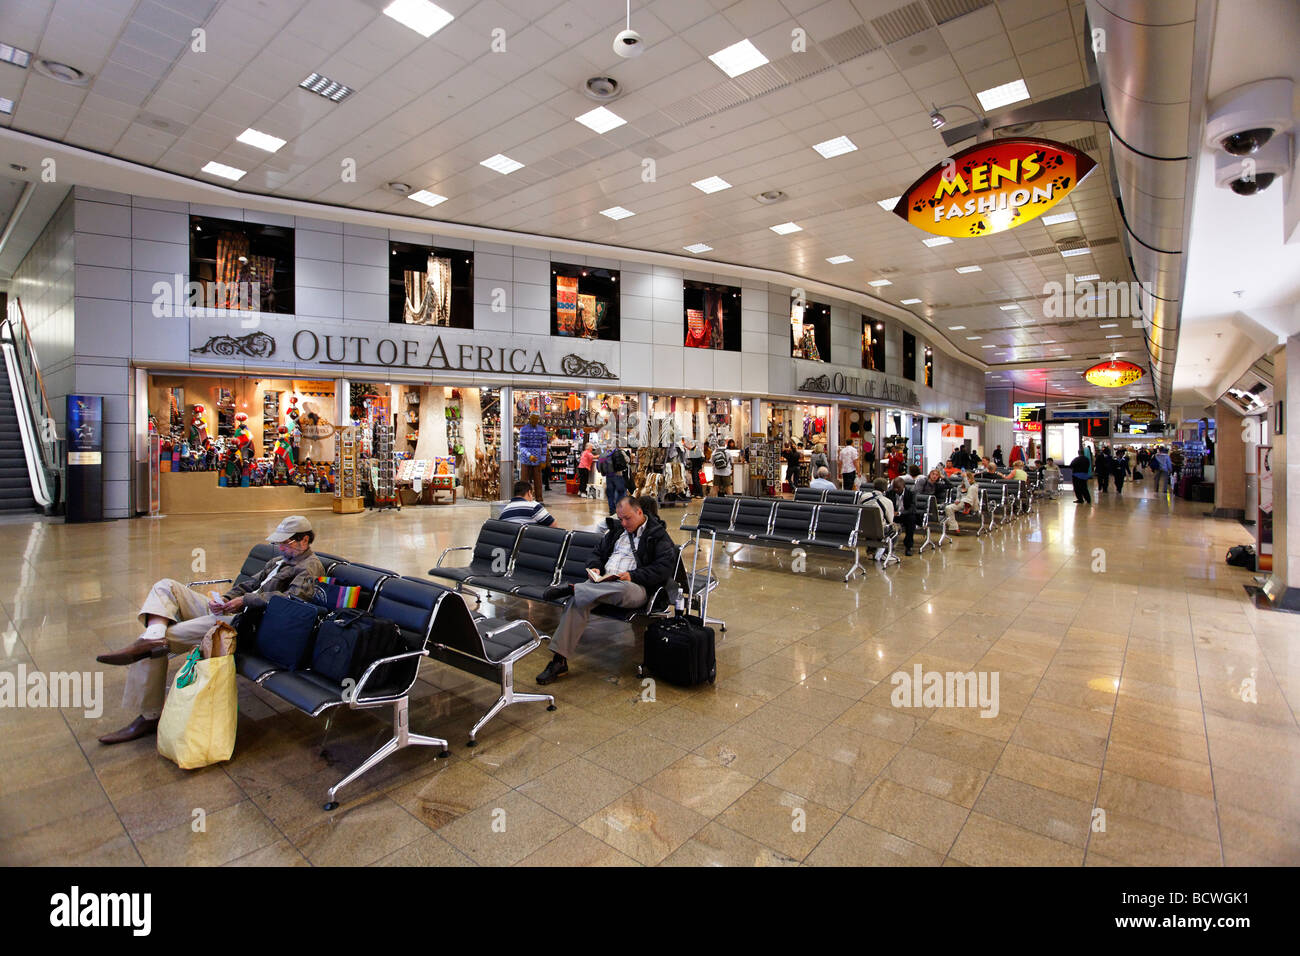 Duty free shopping area, departure, O R Tambo International Airport, Johannesburg, South Africa, Africa - Stock Image